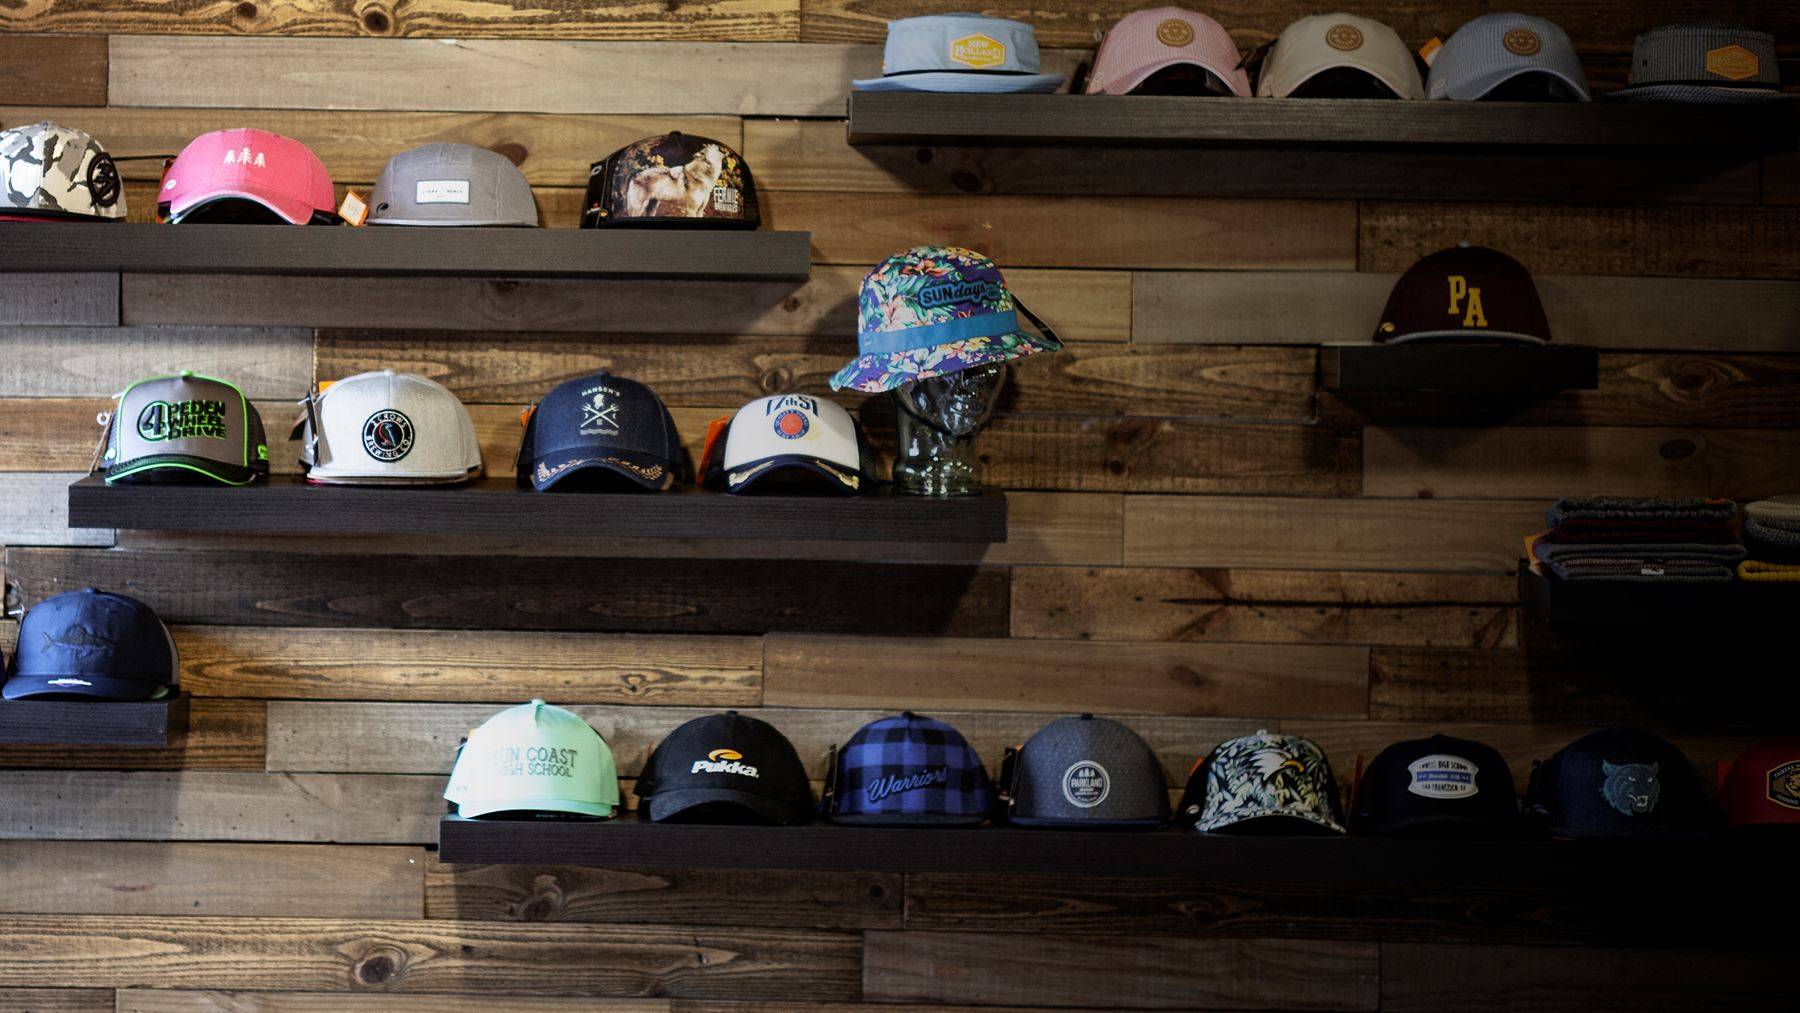 Wall of shelves with hats